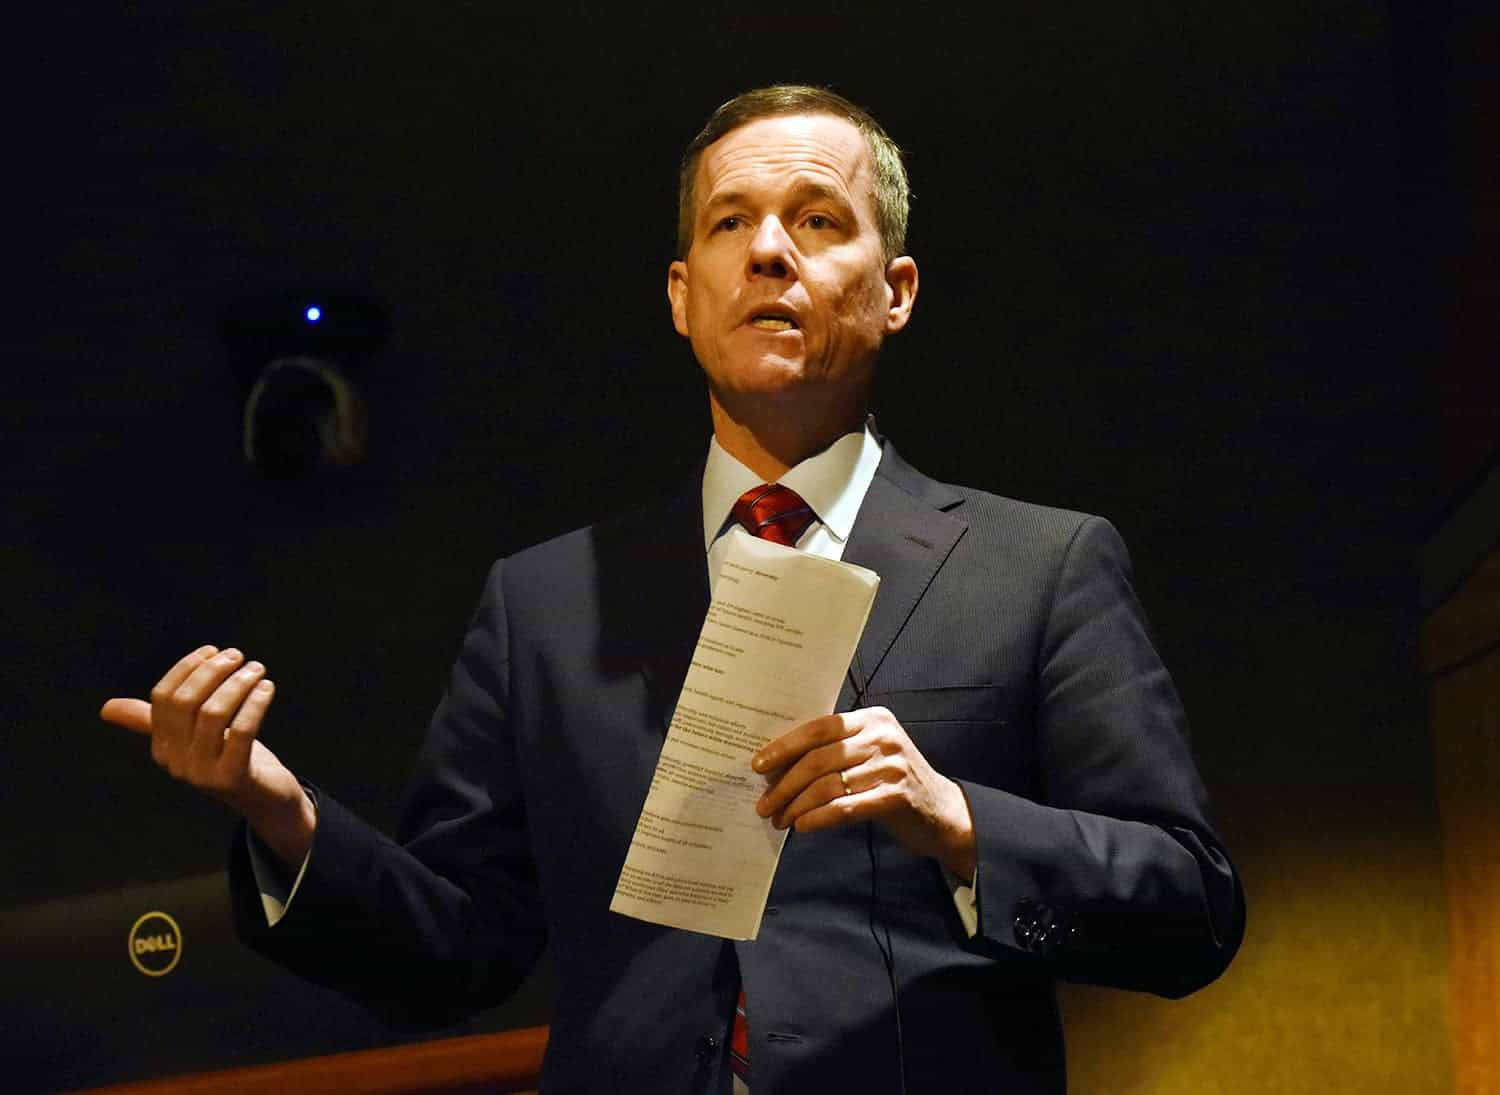 Cam Patterson, M.D., MBA, speaks at an open forum on the UAMS campus Dec. 13. University of Arkansas System President Donald R. Bobbitt will recommend Patterson as the next UAMS chancellor.